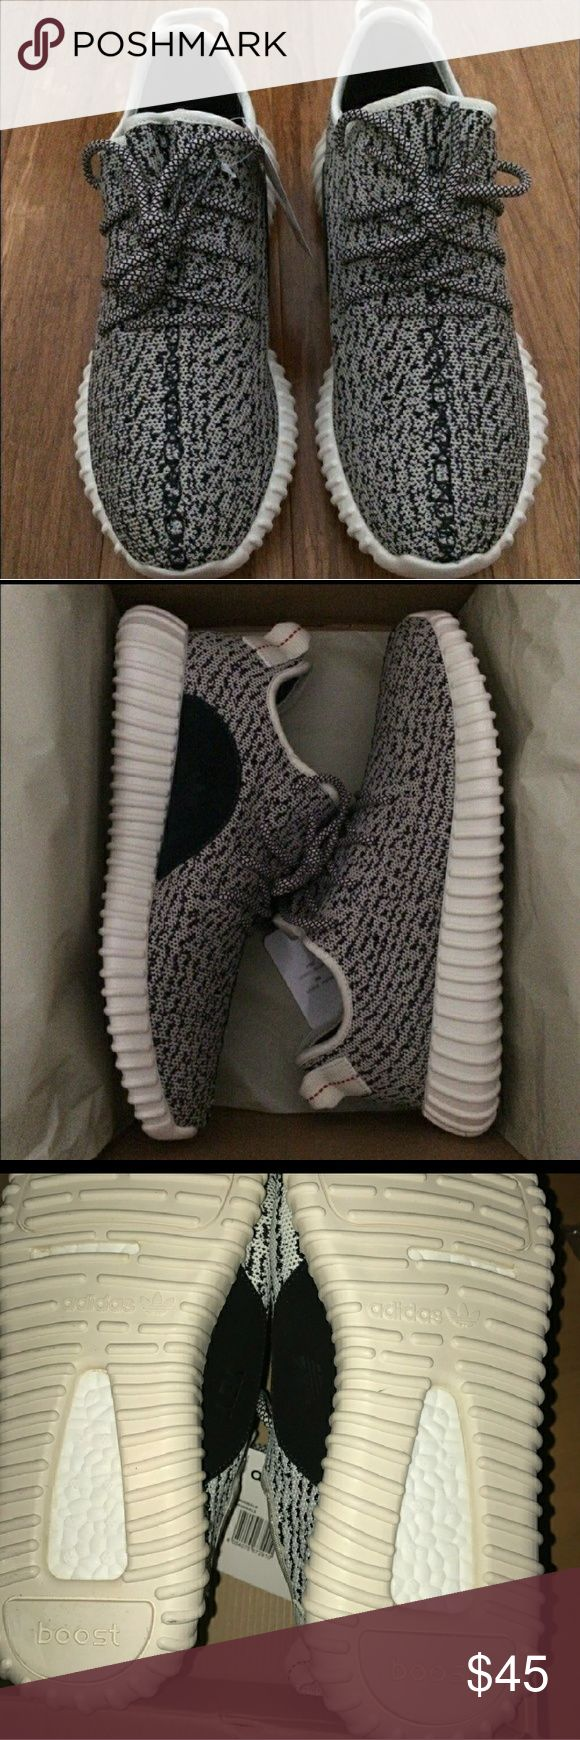 Adidas Yeezy Sneaker Brand new with tags and never worn. Fits true to size. No box. Prices are firm and self explanatory.   ❌NO OFFERS❌ adidas Shoes Athletic Shoes